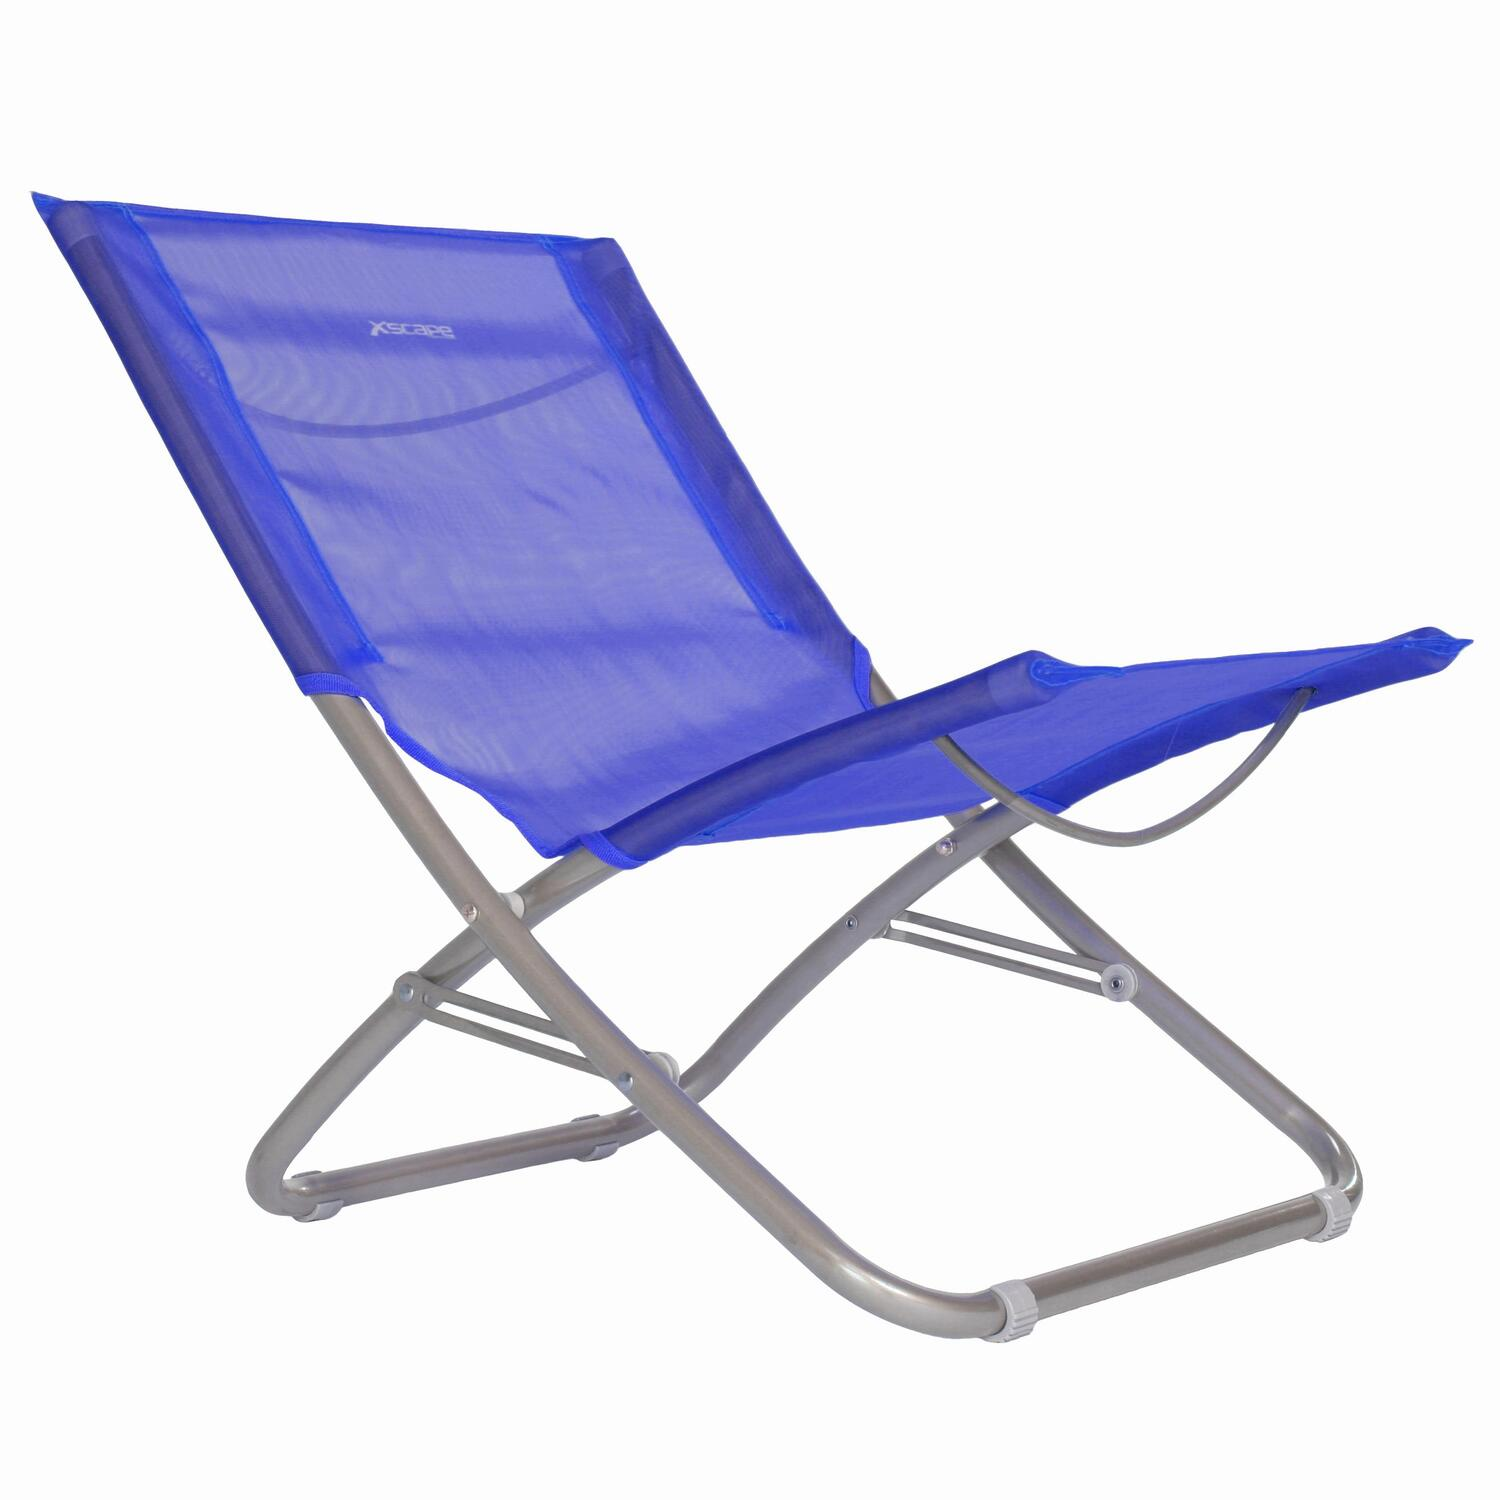 Xscape Sol Lite - Folding Beach Chair by OJ Commerce $28.99